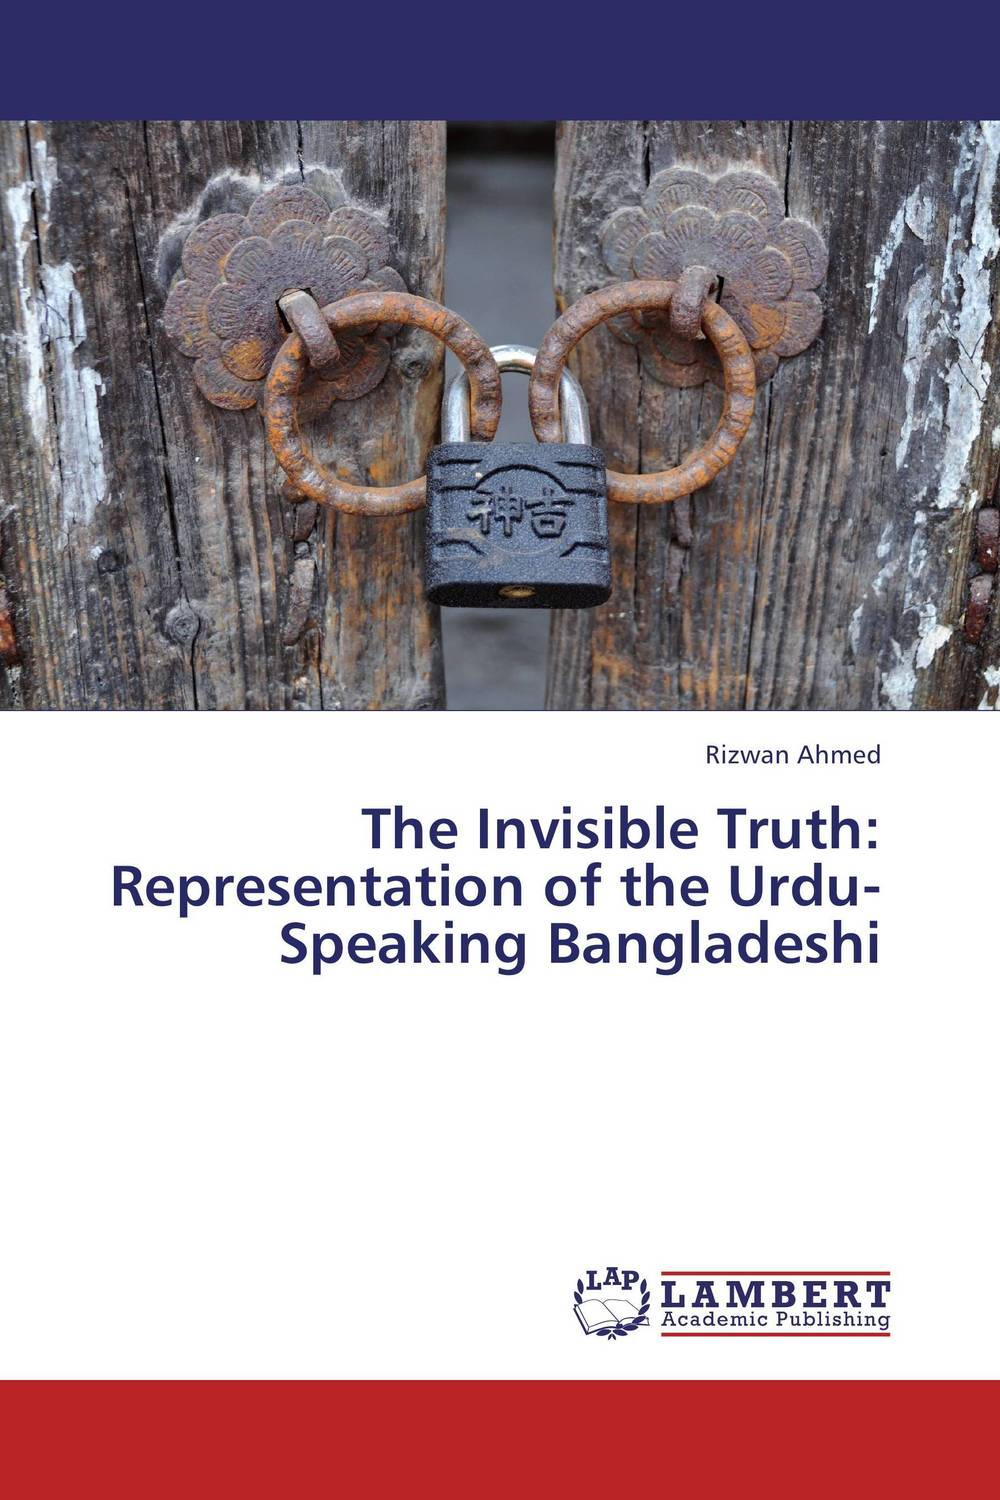 The Invisible Truth: Representation of the Urdu-Speaking Bangladeshi a climate of fear